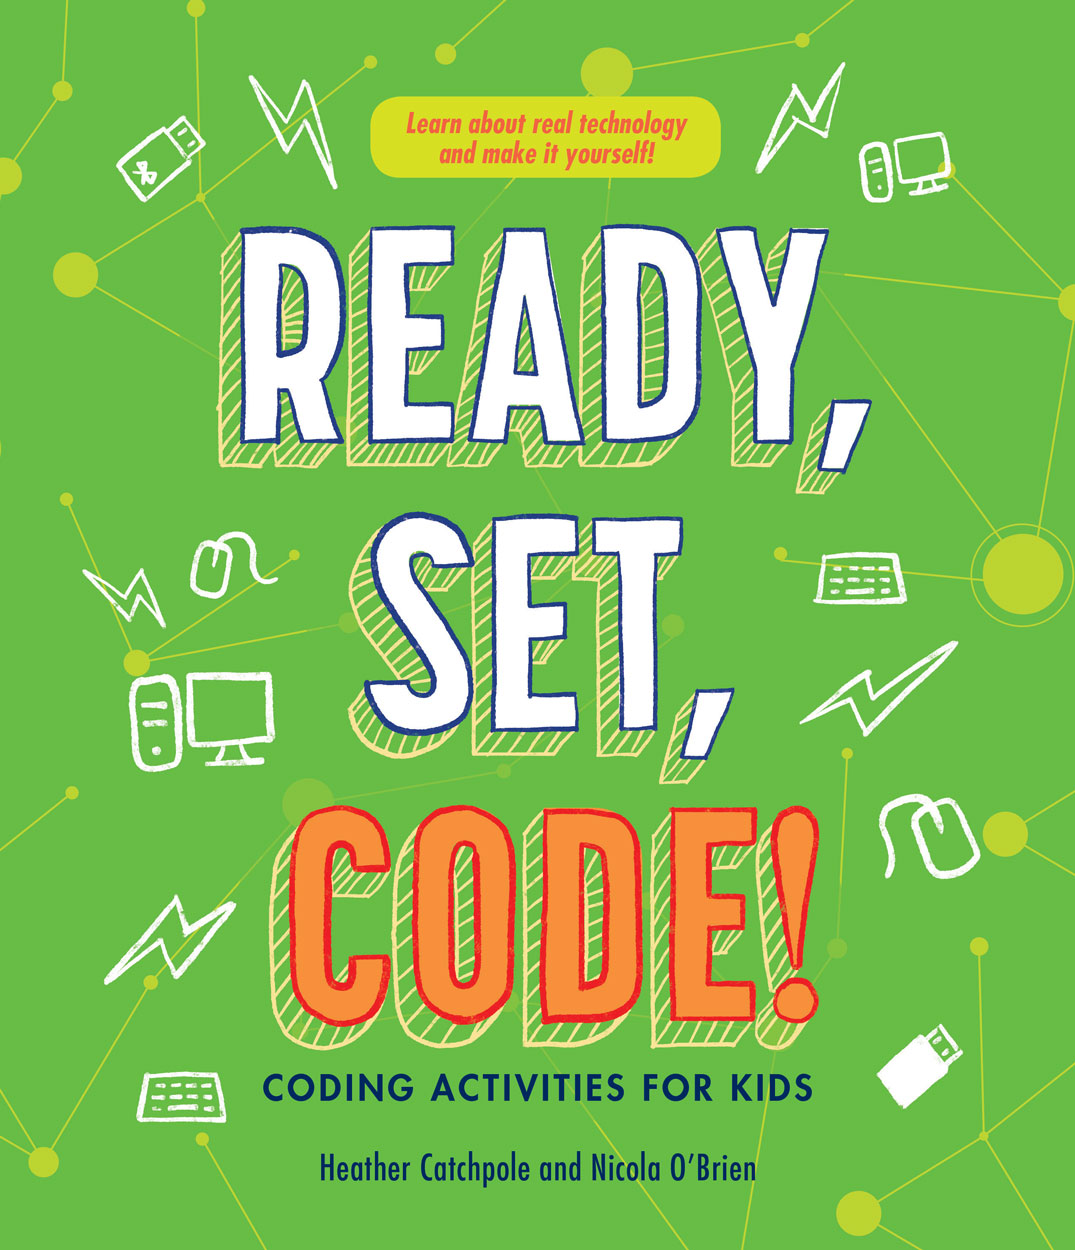 Ready, Set, Code! Coding Activities for Kids